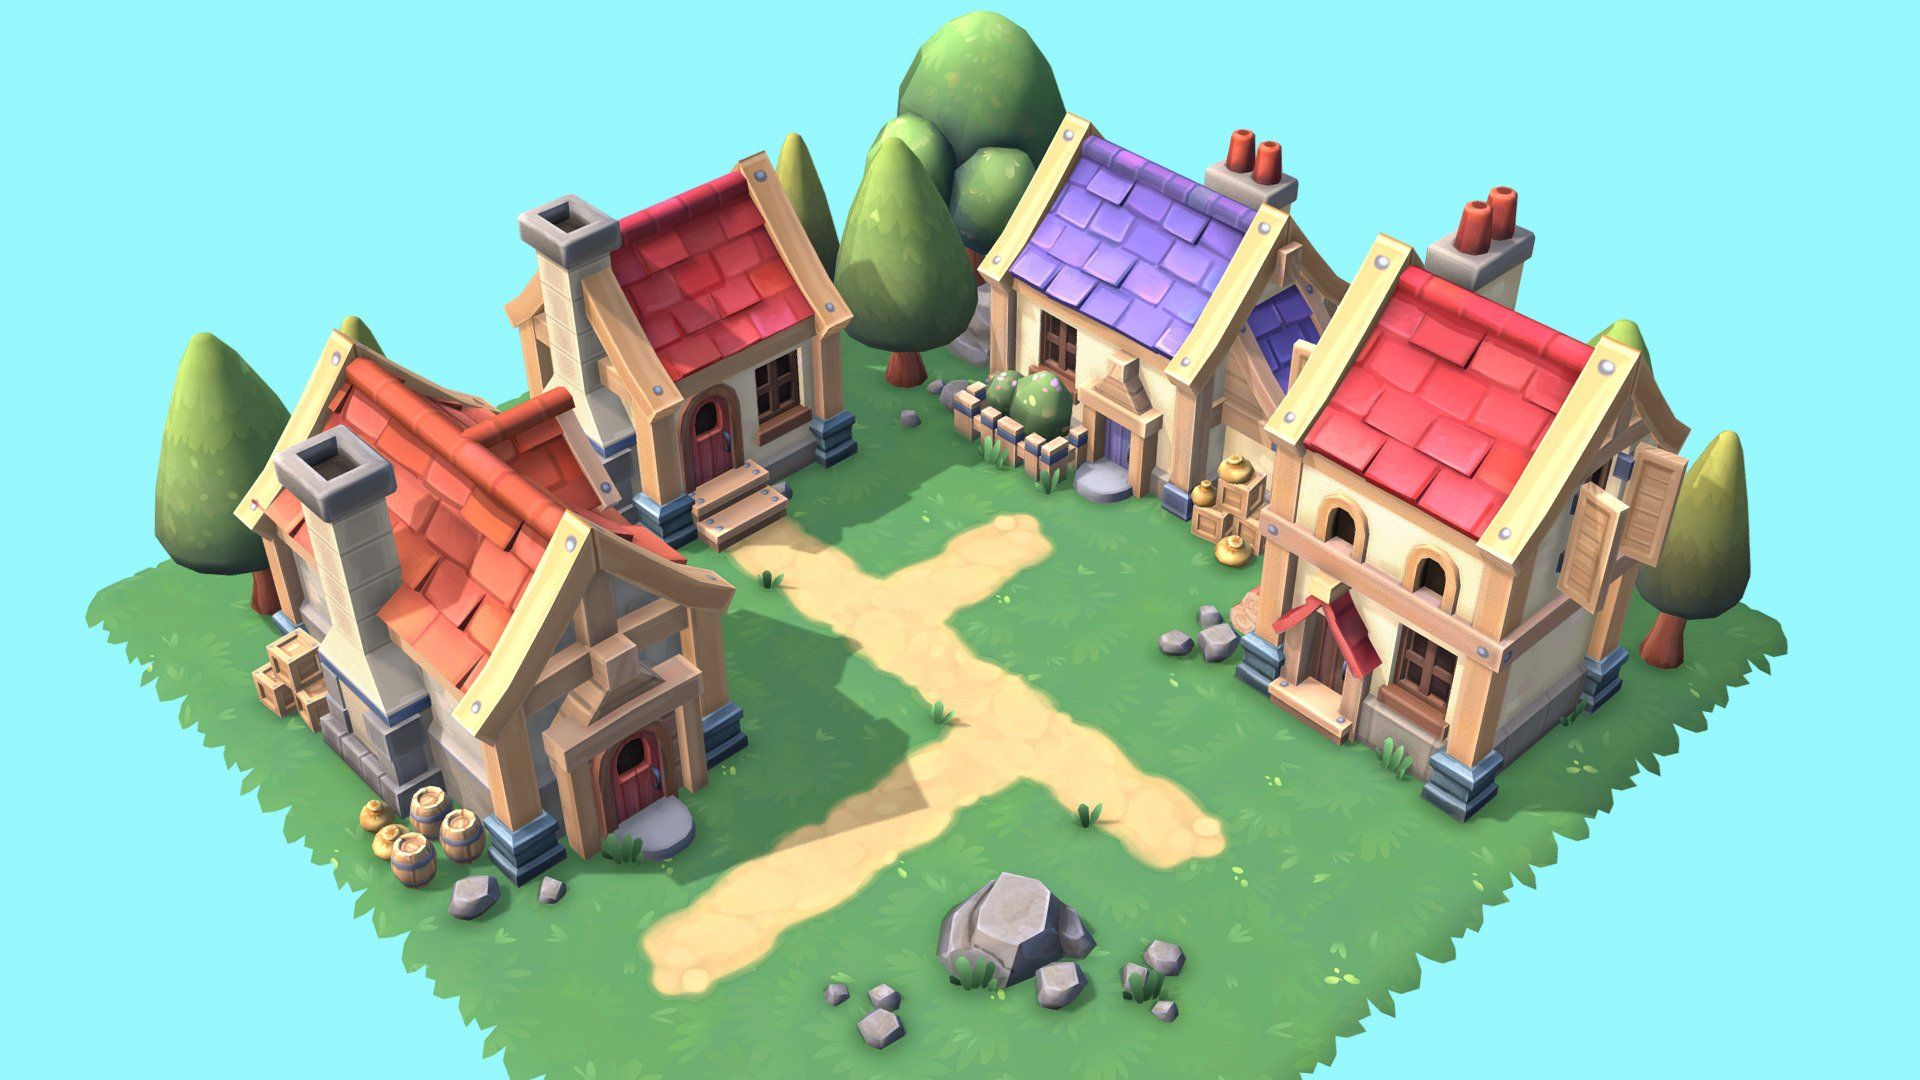 Hand Painted Low Poly Fantasy Style Village Set Perfect For